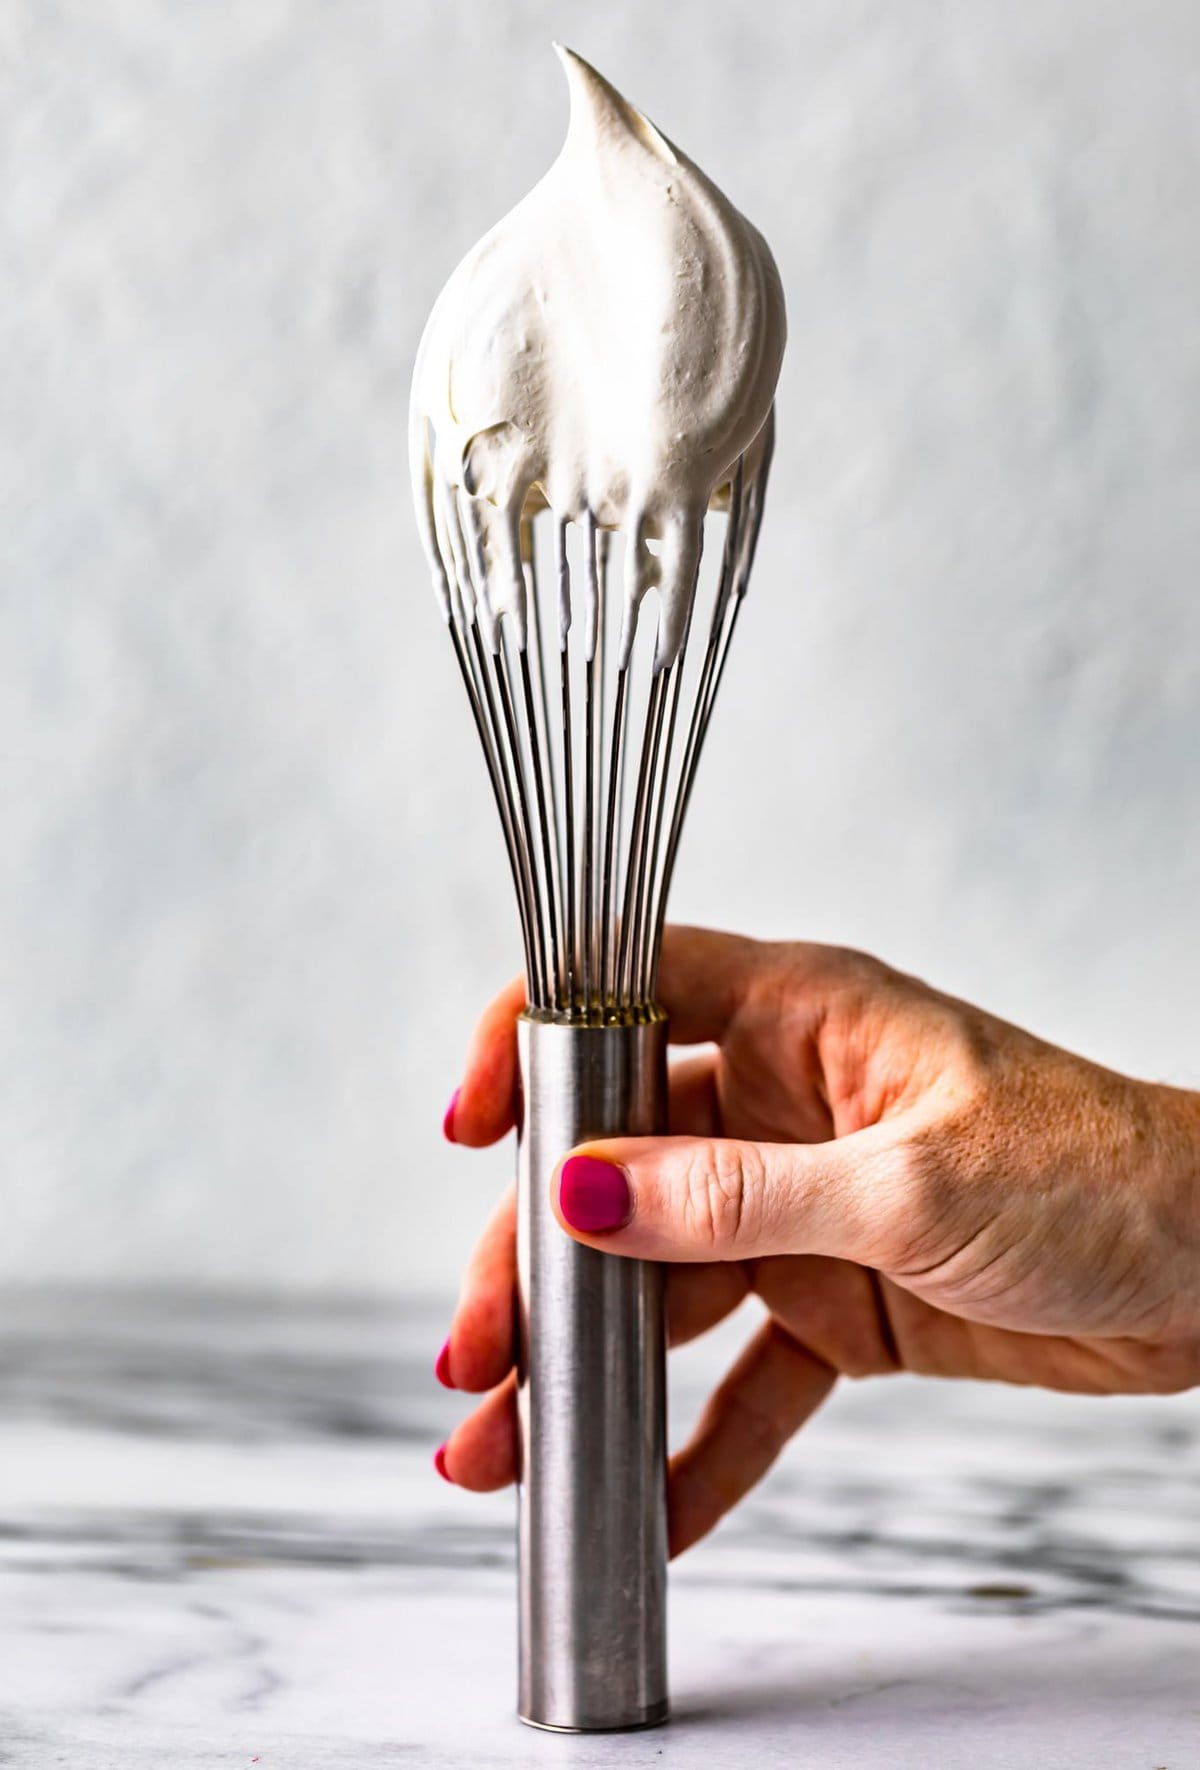 hand holding a whisk dipped in whipped cream